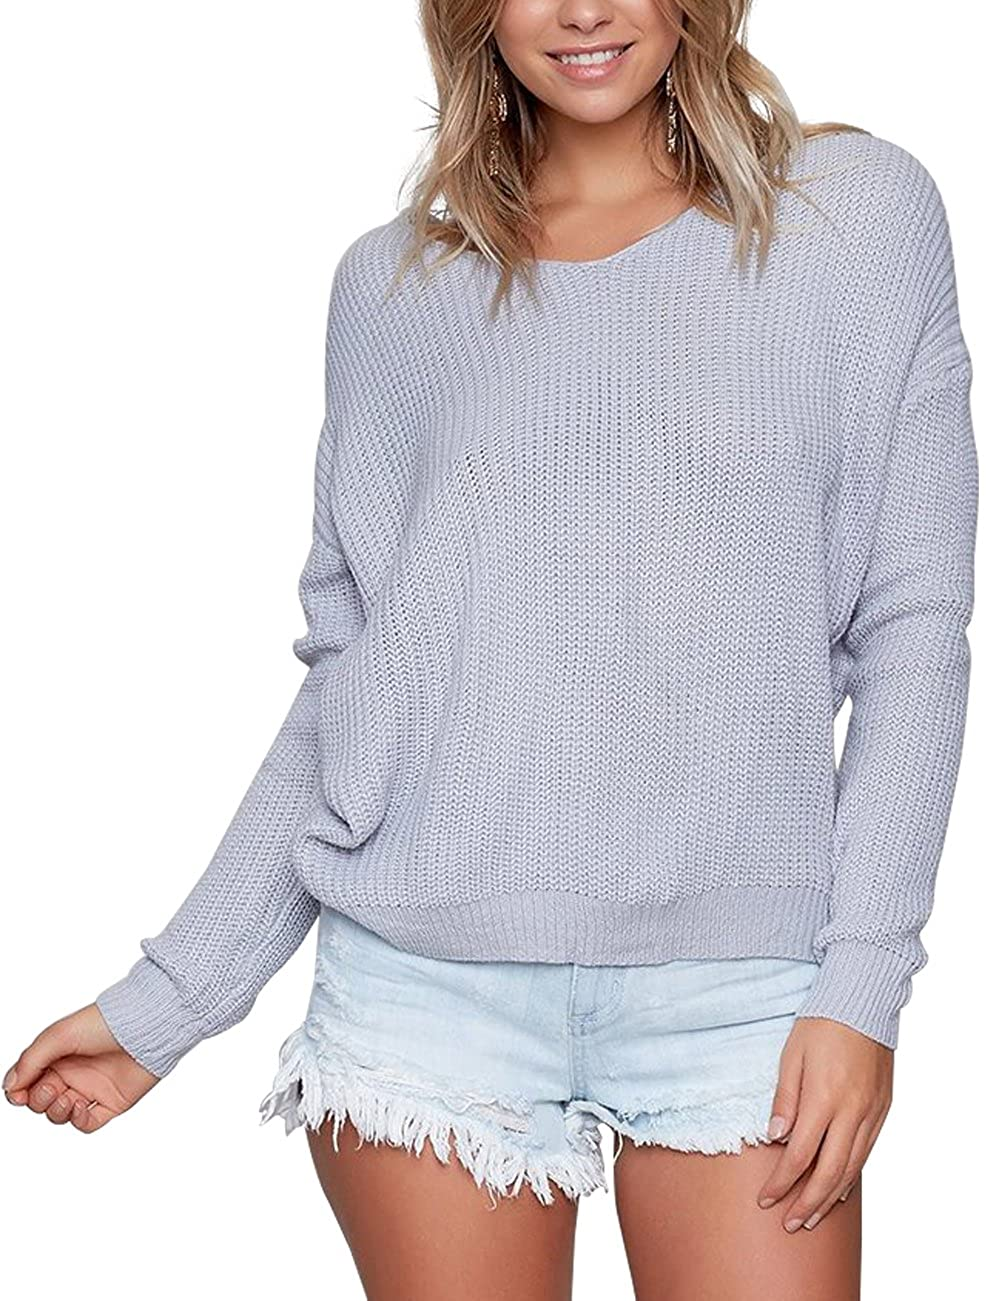 Eliacher Women Sweaters Casual Hollow Knit Top Blouse T-Shirt Loose Jumper Pullovers Not The Ball